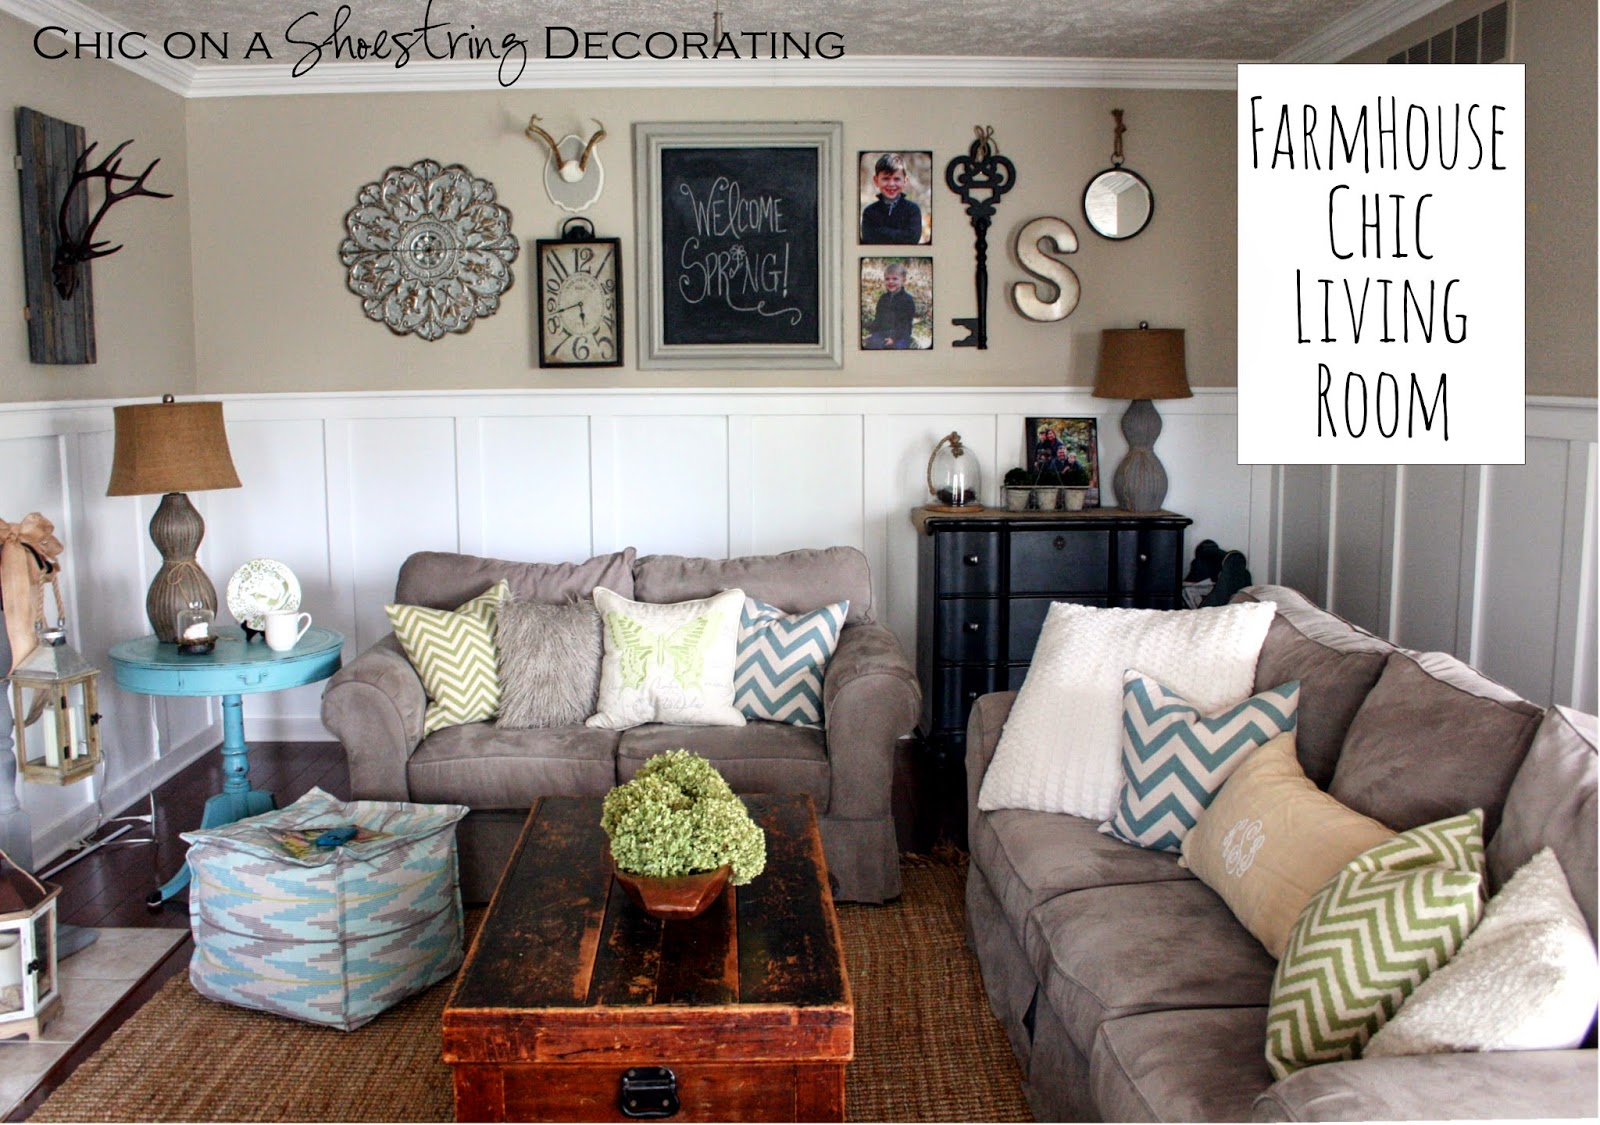 farmhouse chic decor chic on a shoestring decorating blog - Farmhouse Living Room Furniture